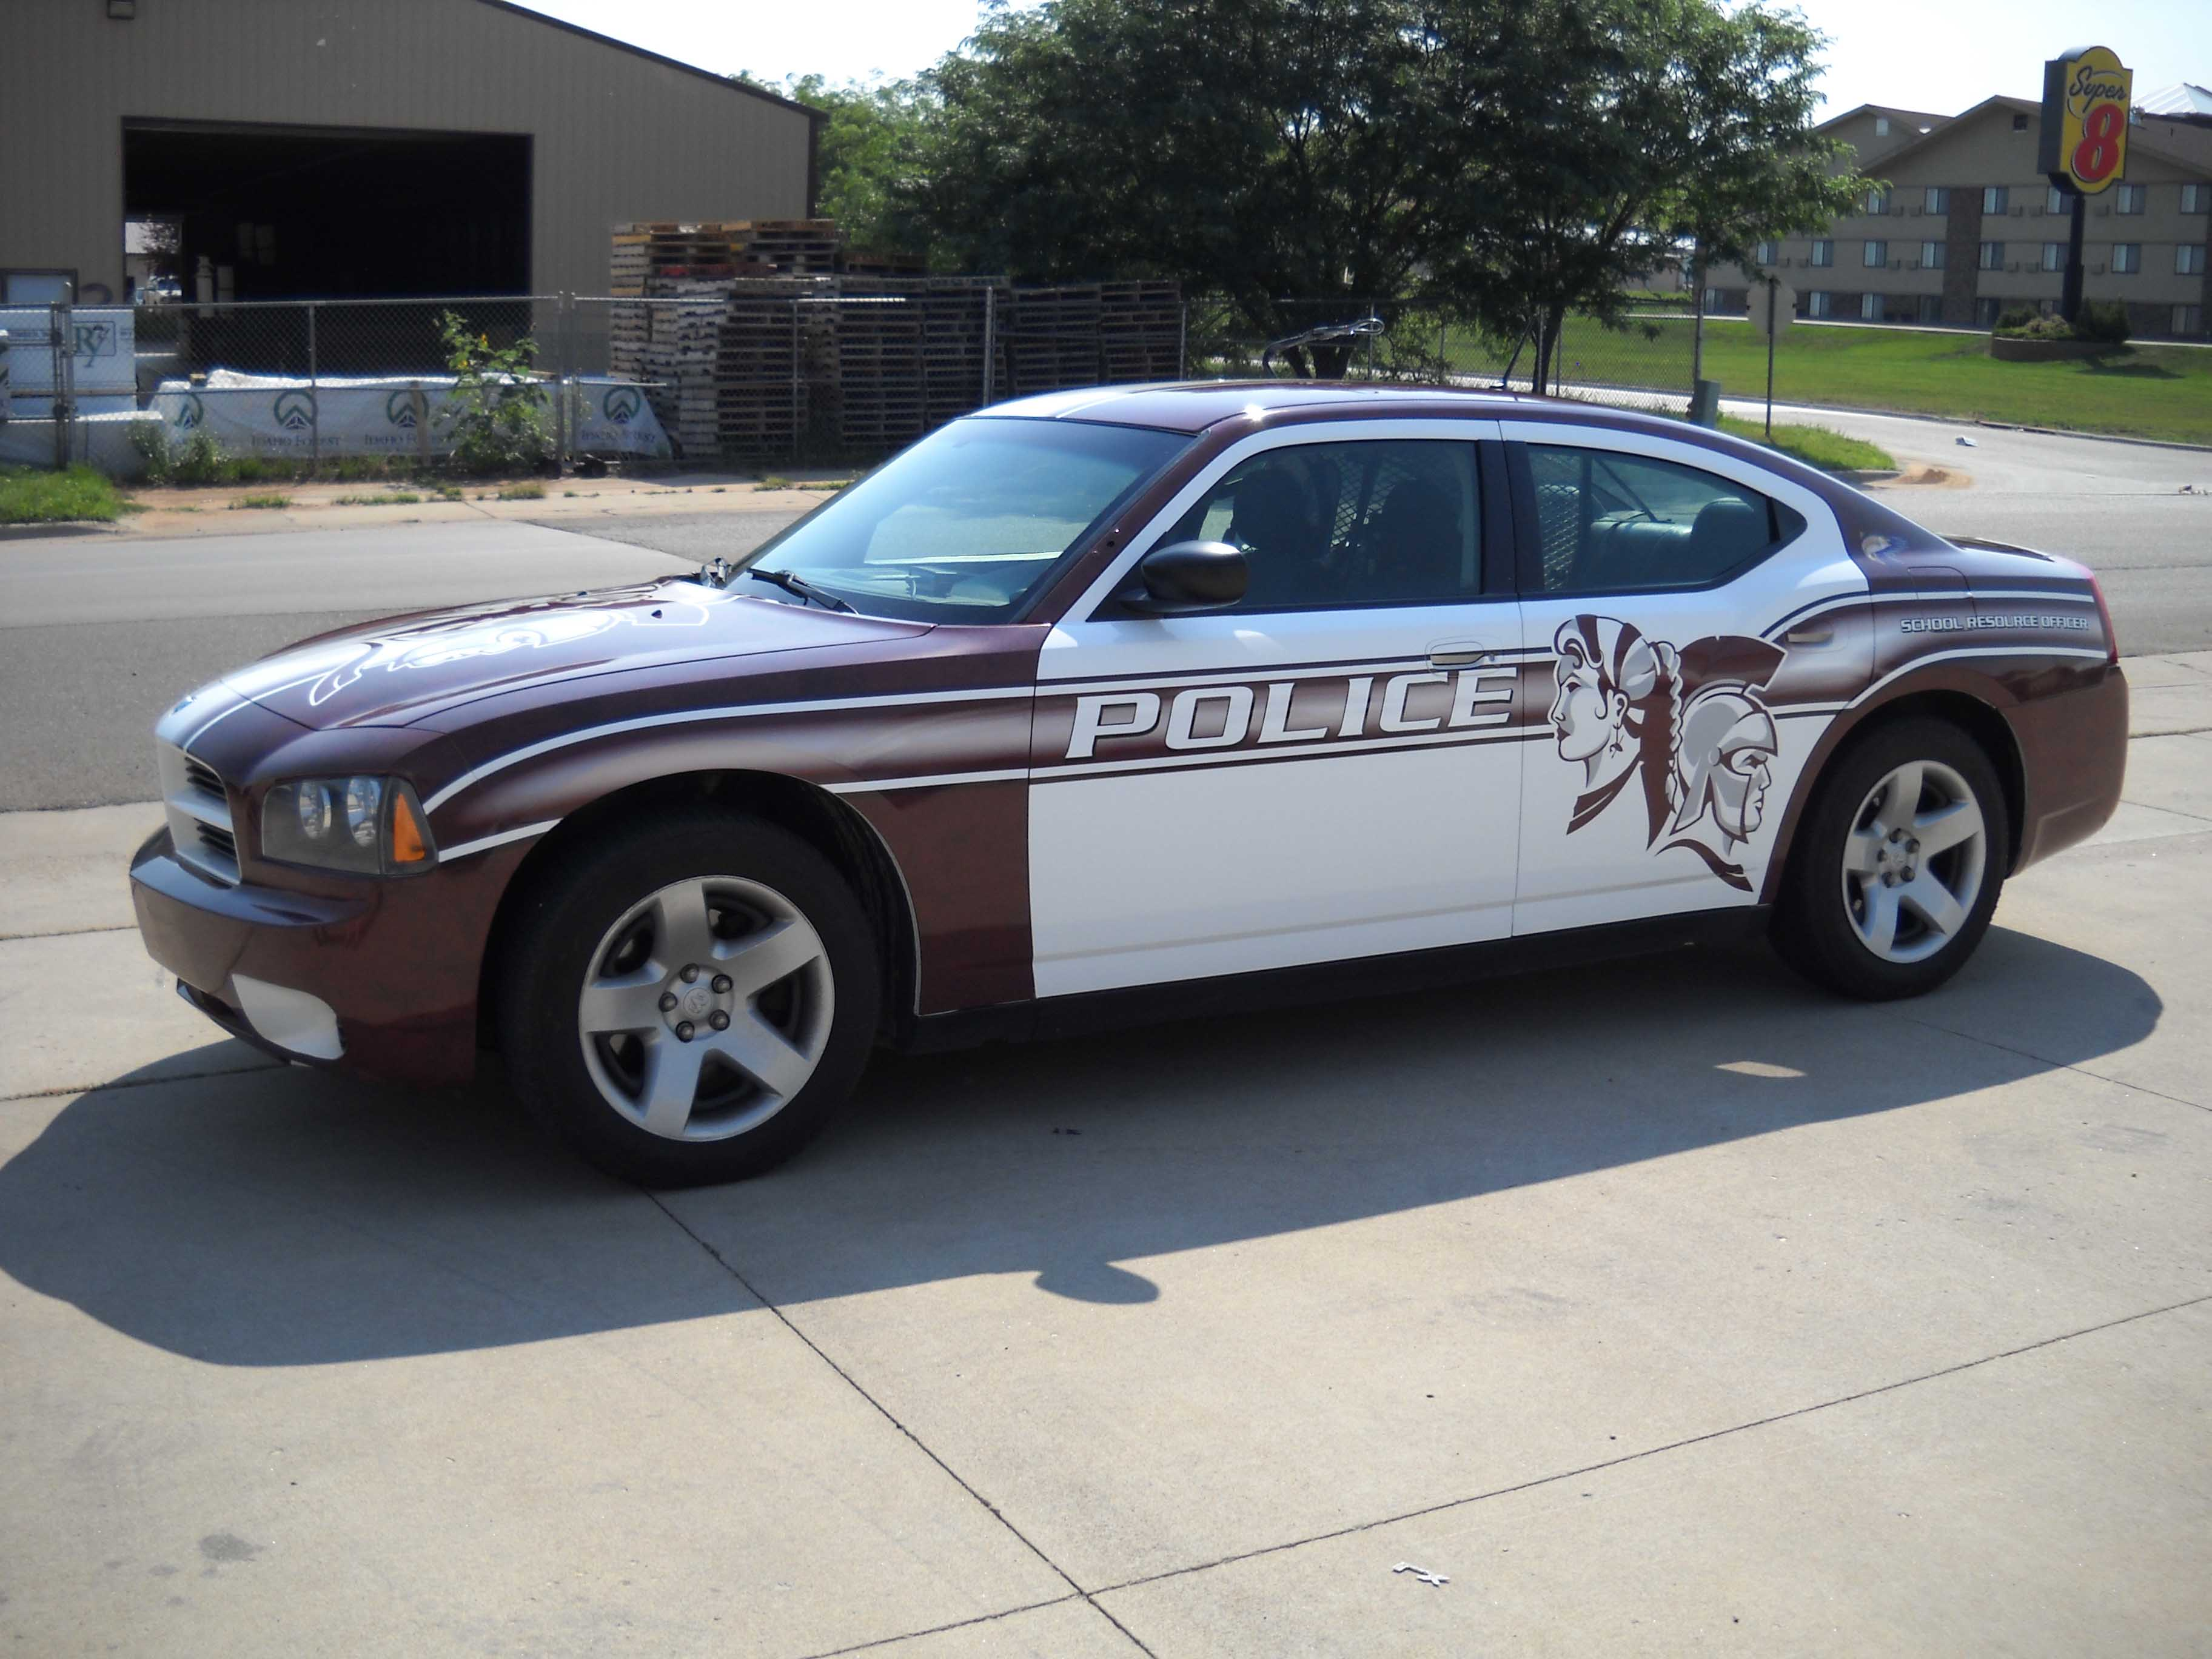 Spearfish Police Spartan Car